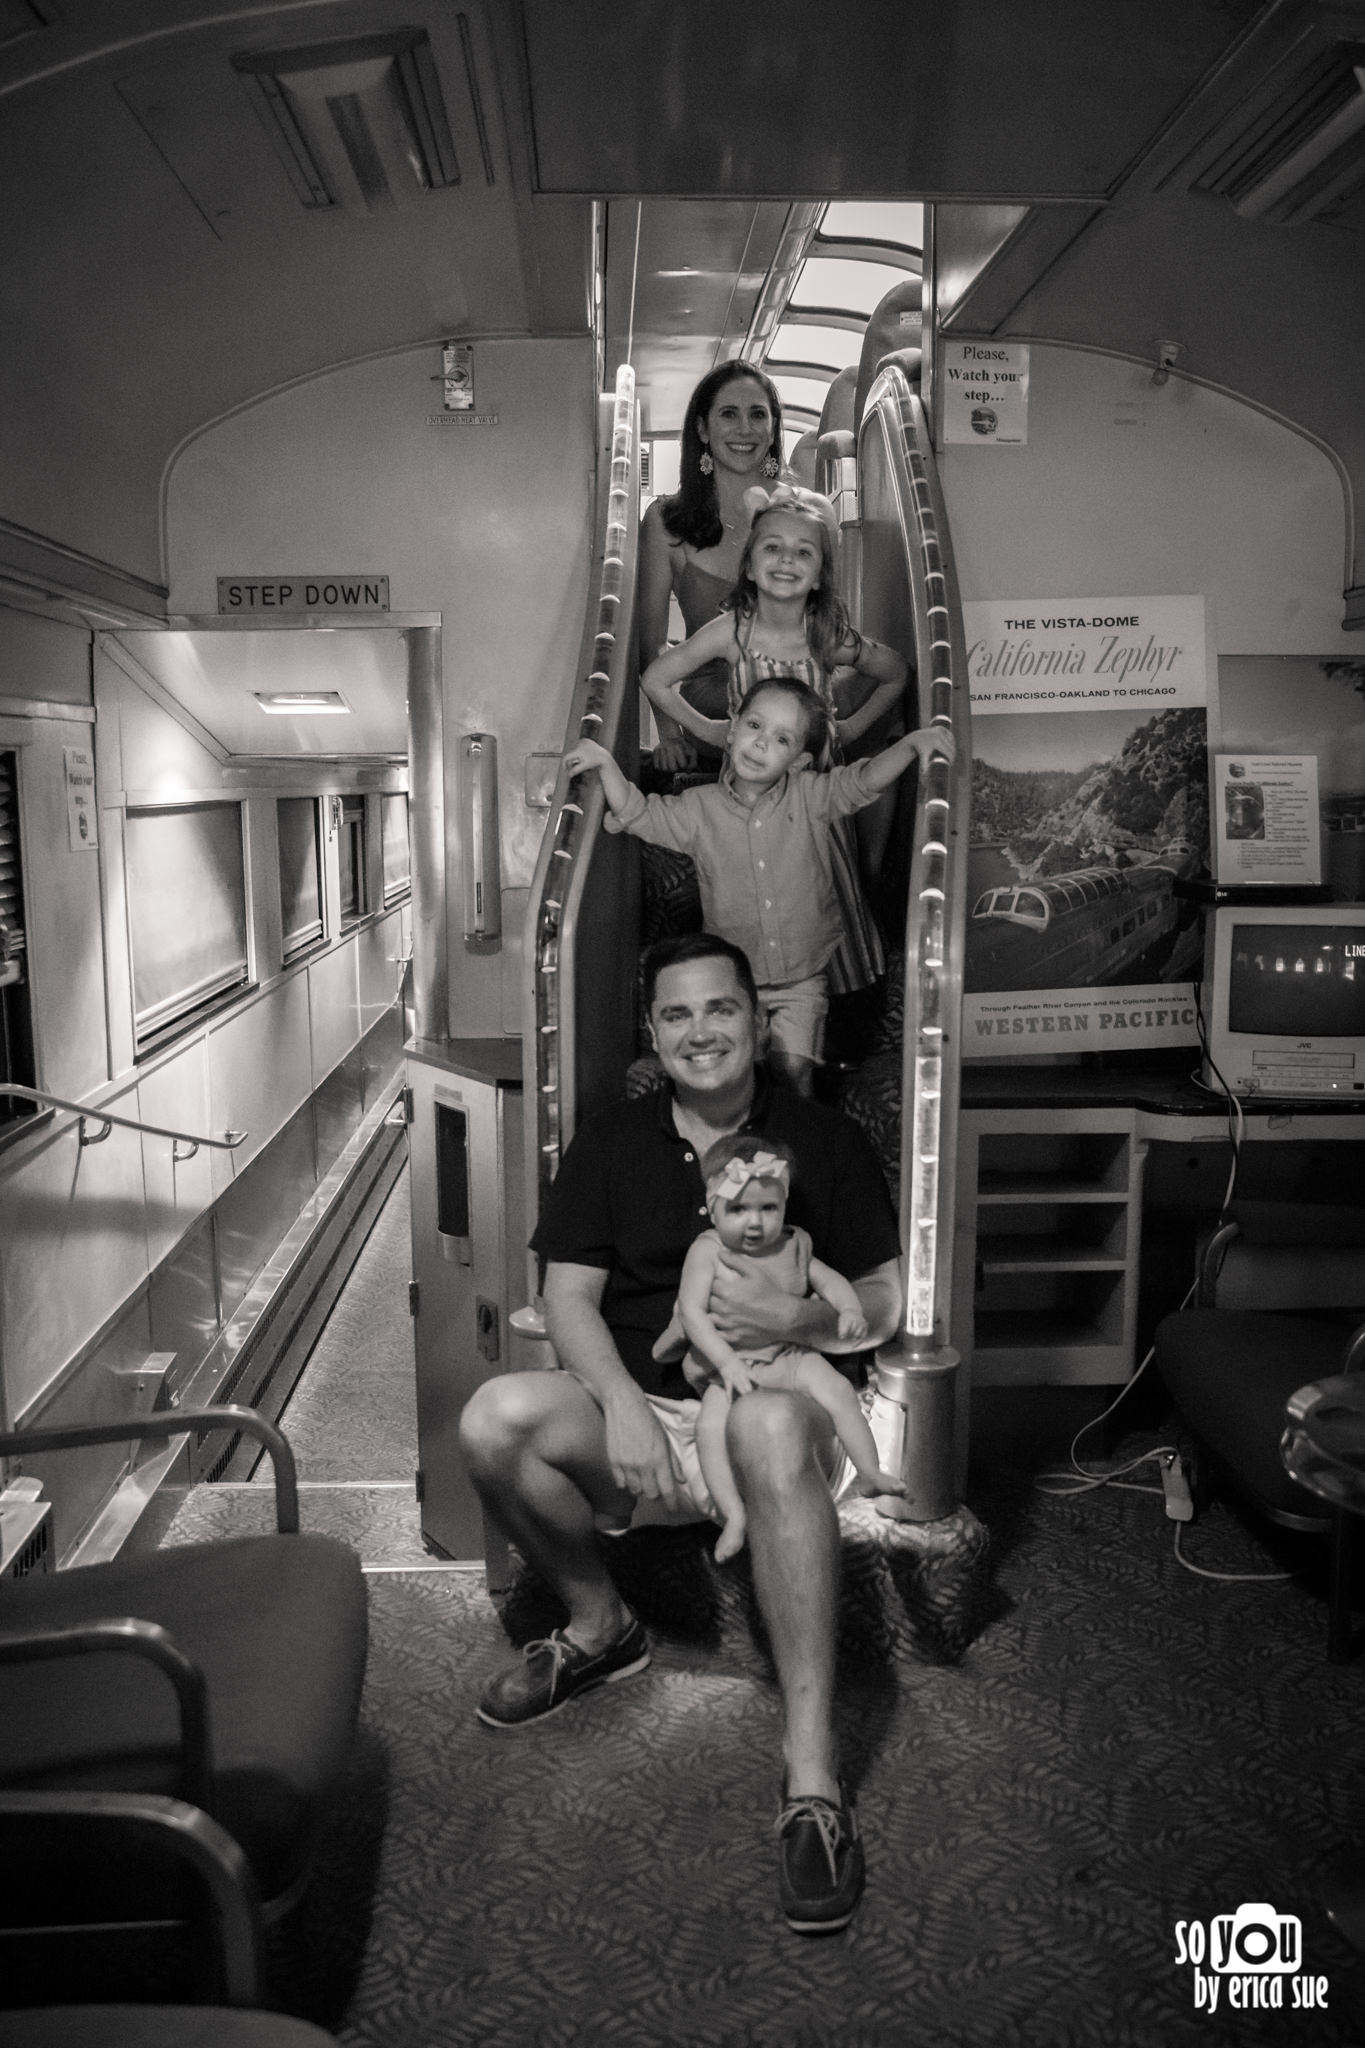 so-you-by-erica-sue-gold-coast-railroad-museum-miami-family-photo-shoot-session-7044.JPG